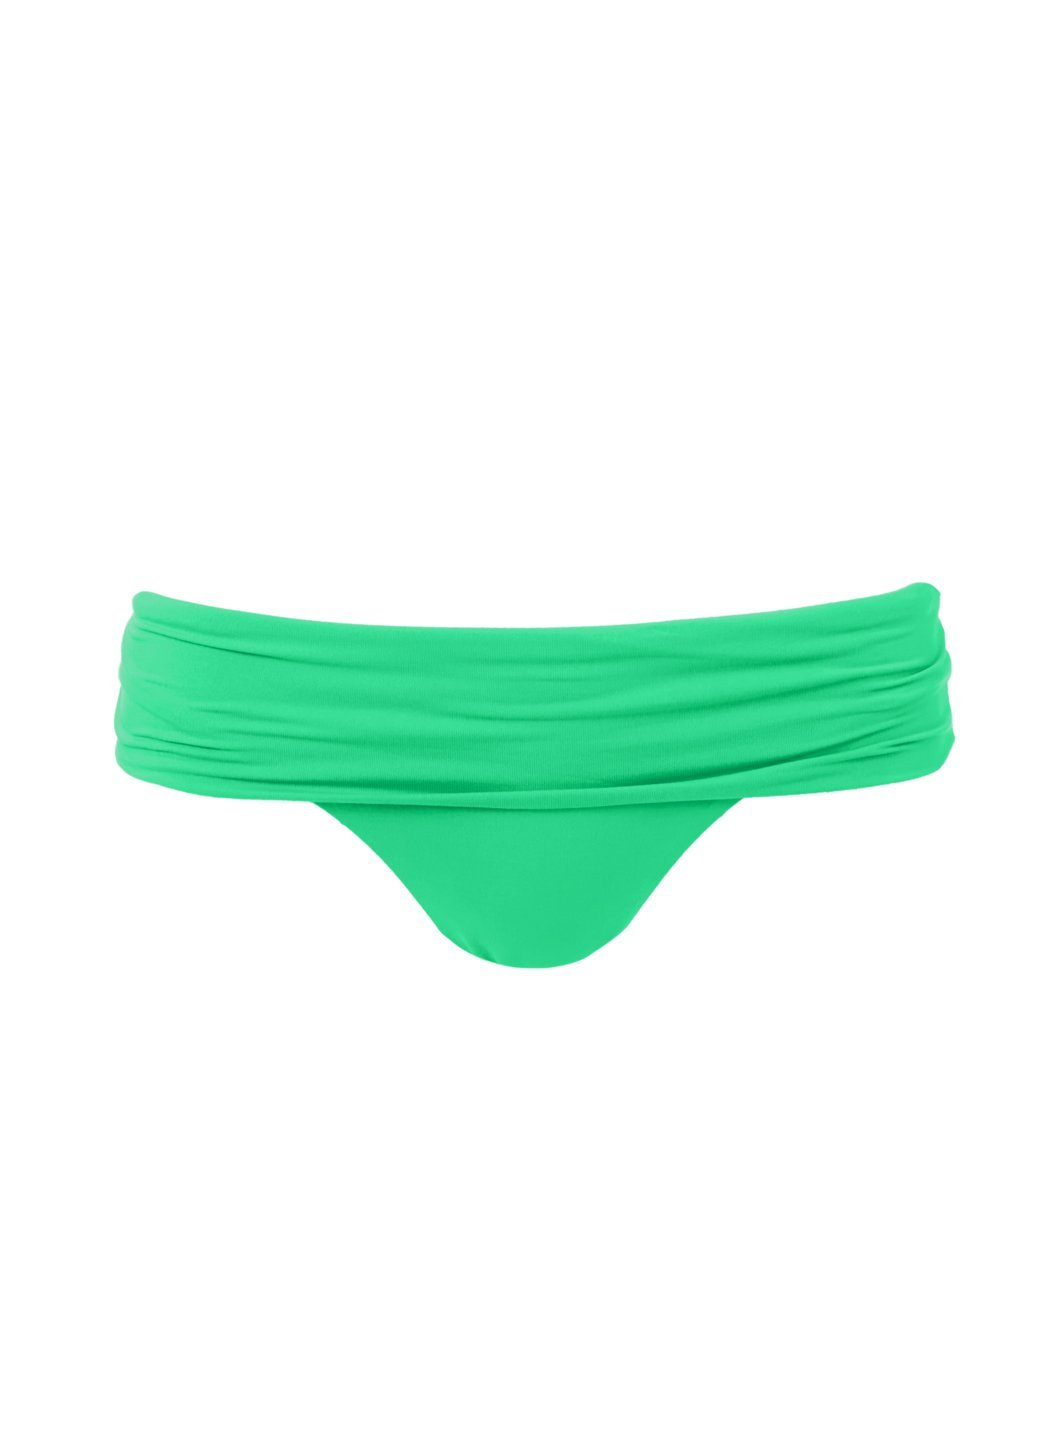 Brussels Green Seamless Fold Over Bikini Bottom